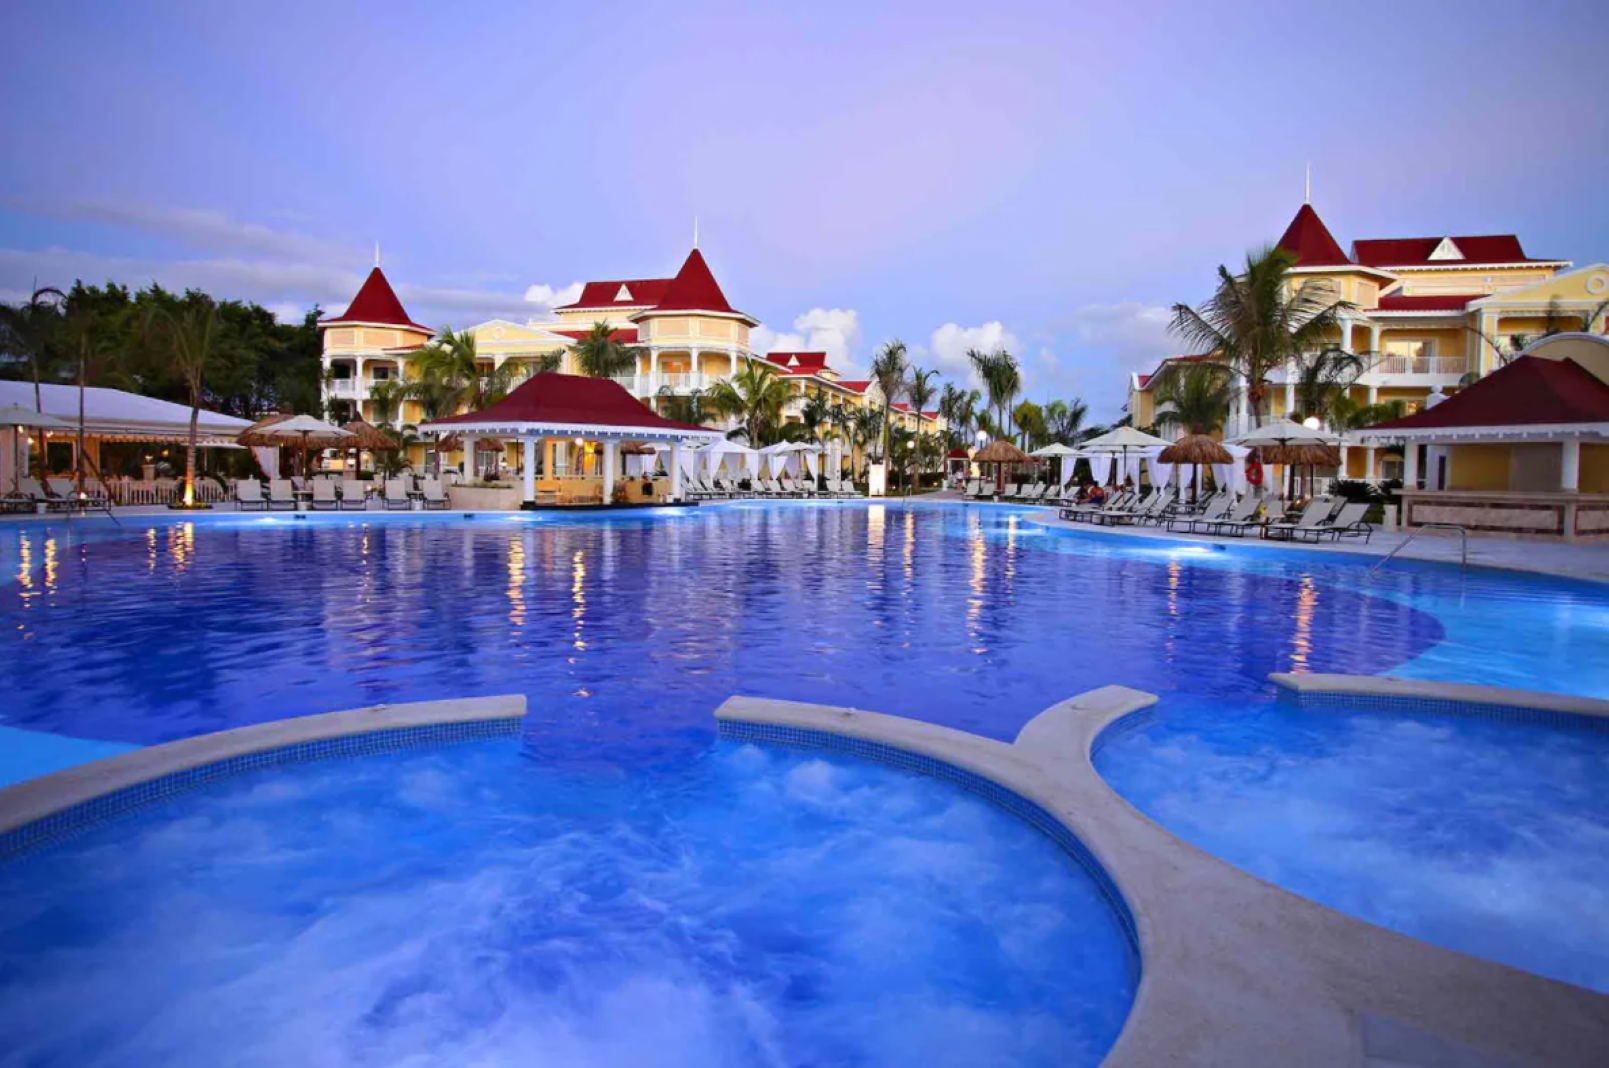 Photo taken at dusk showing hot tubs connected to the a main pool. The large pool is lined with chairs, umbrellas, and has a swim up bar. The grounds have palm trees lining the walkways and the sky is a light lavender with soft white clouds. the hotel sits on both sides of the pool and is yellow with white trim and a red roof.